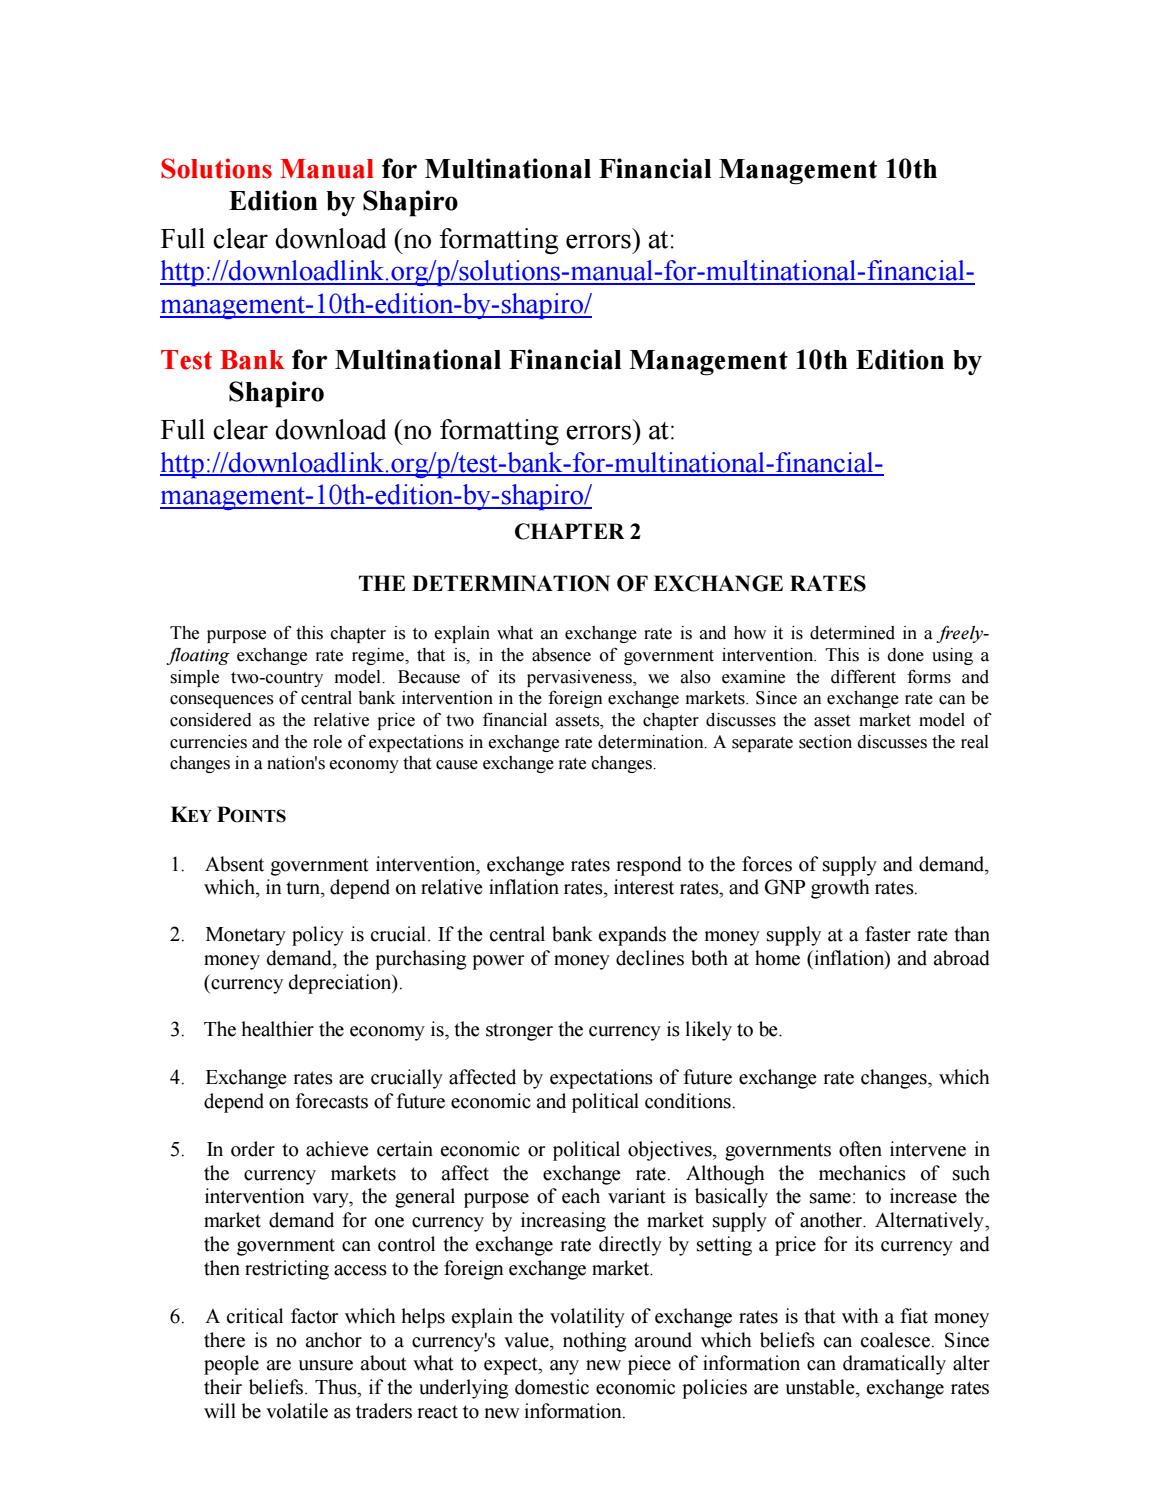 Solutions Manual for Multinational Financial Management 10th Edition by  Shapiro by Anderson333r - issuu